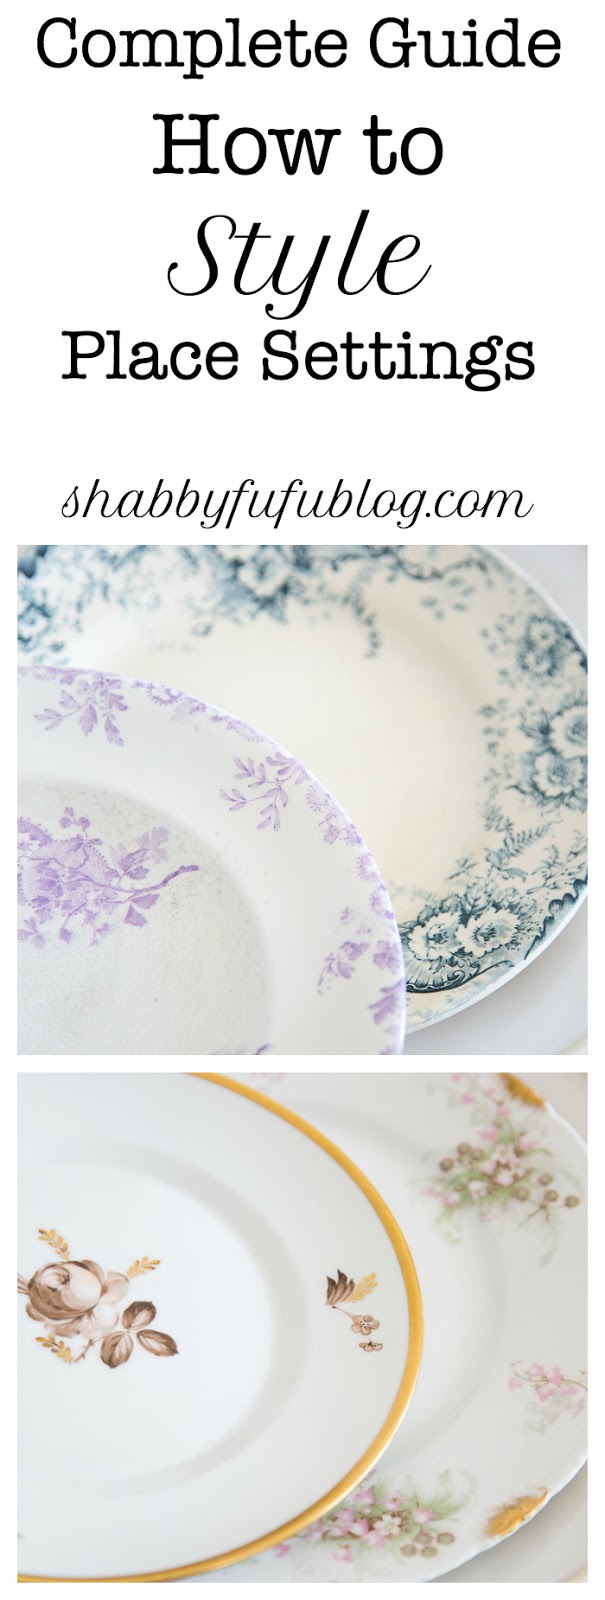 Complete-guide-tablesetting